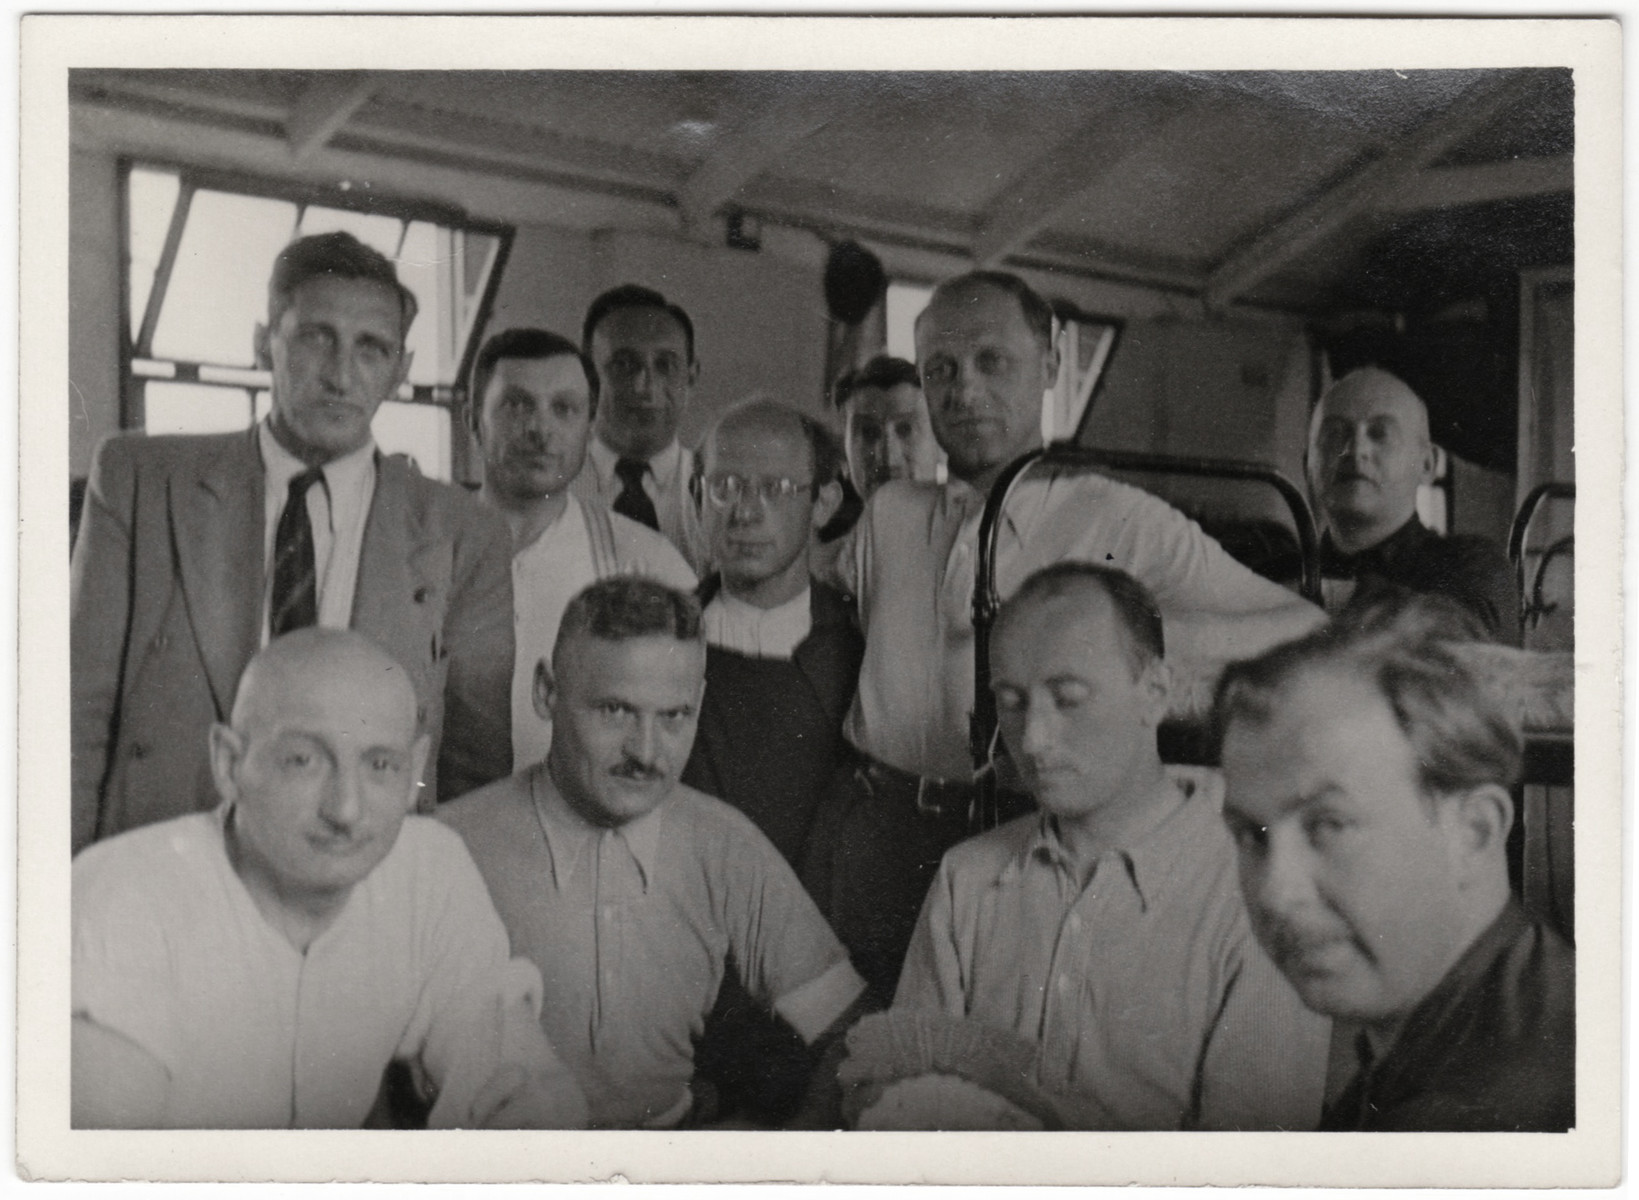 Group portrait of Jewish men inside a barracks in the Kitchener refugee camp.  Siegfried Kulmann is pictured in the lower right.